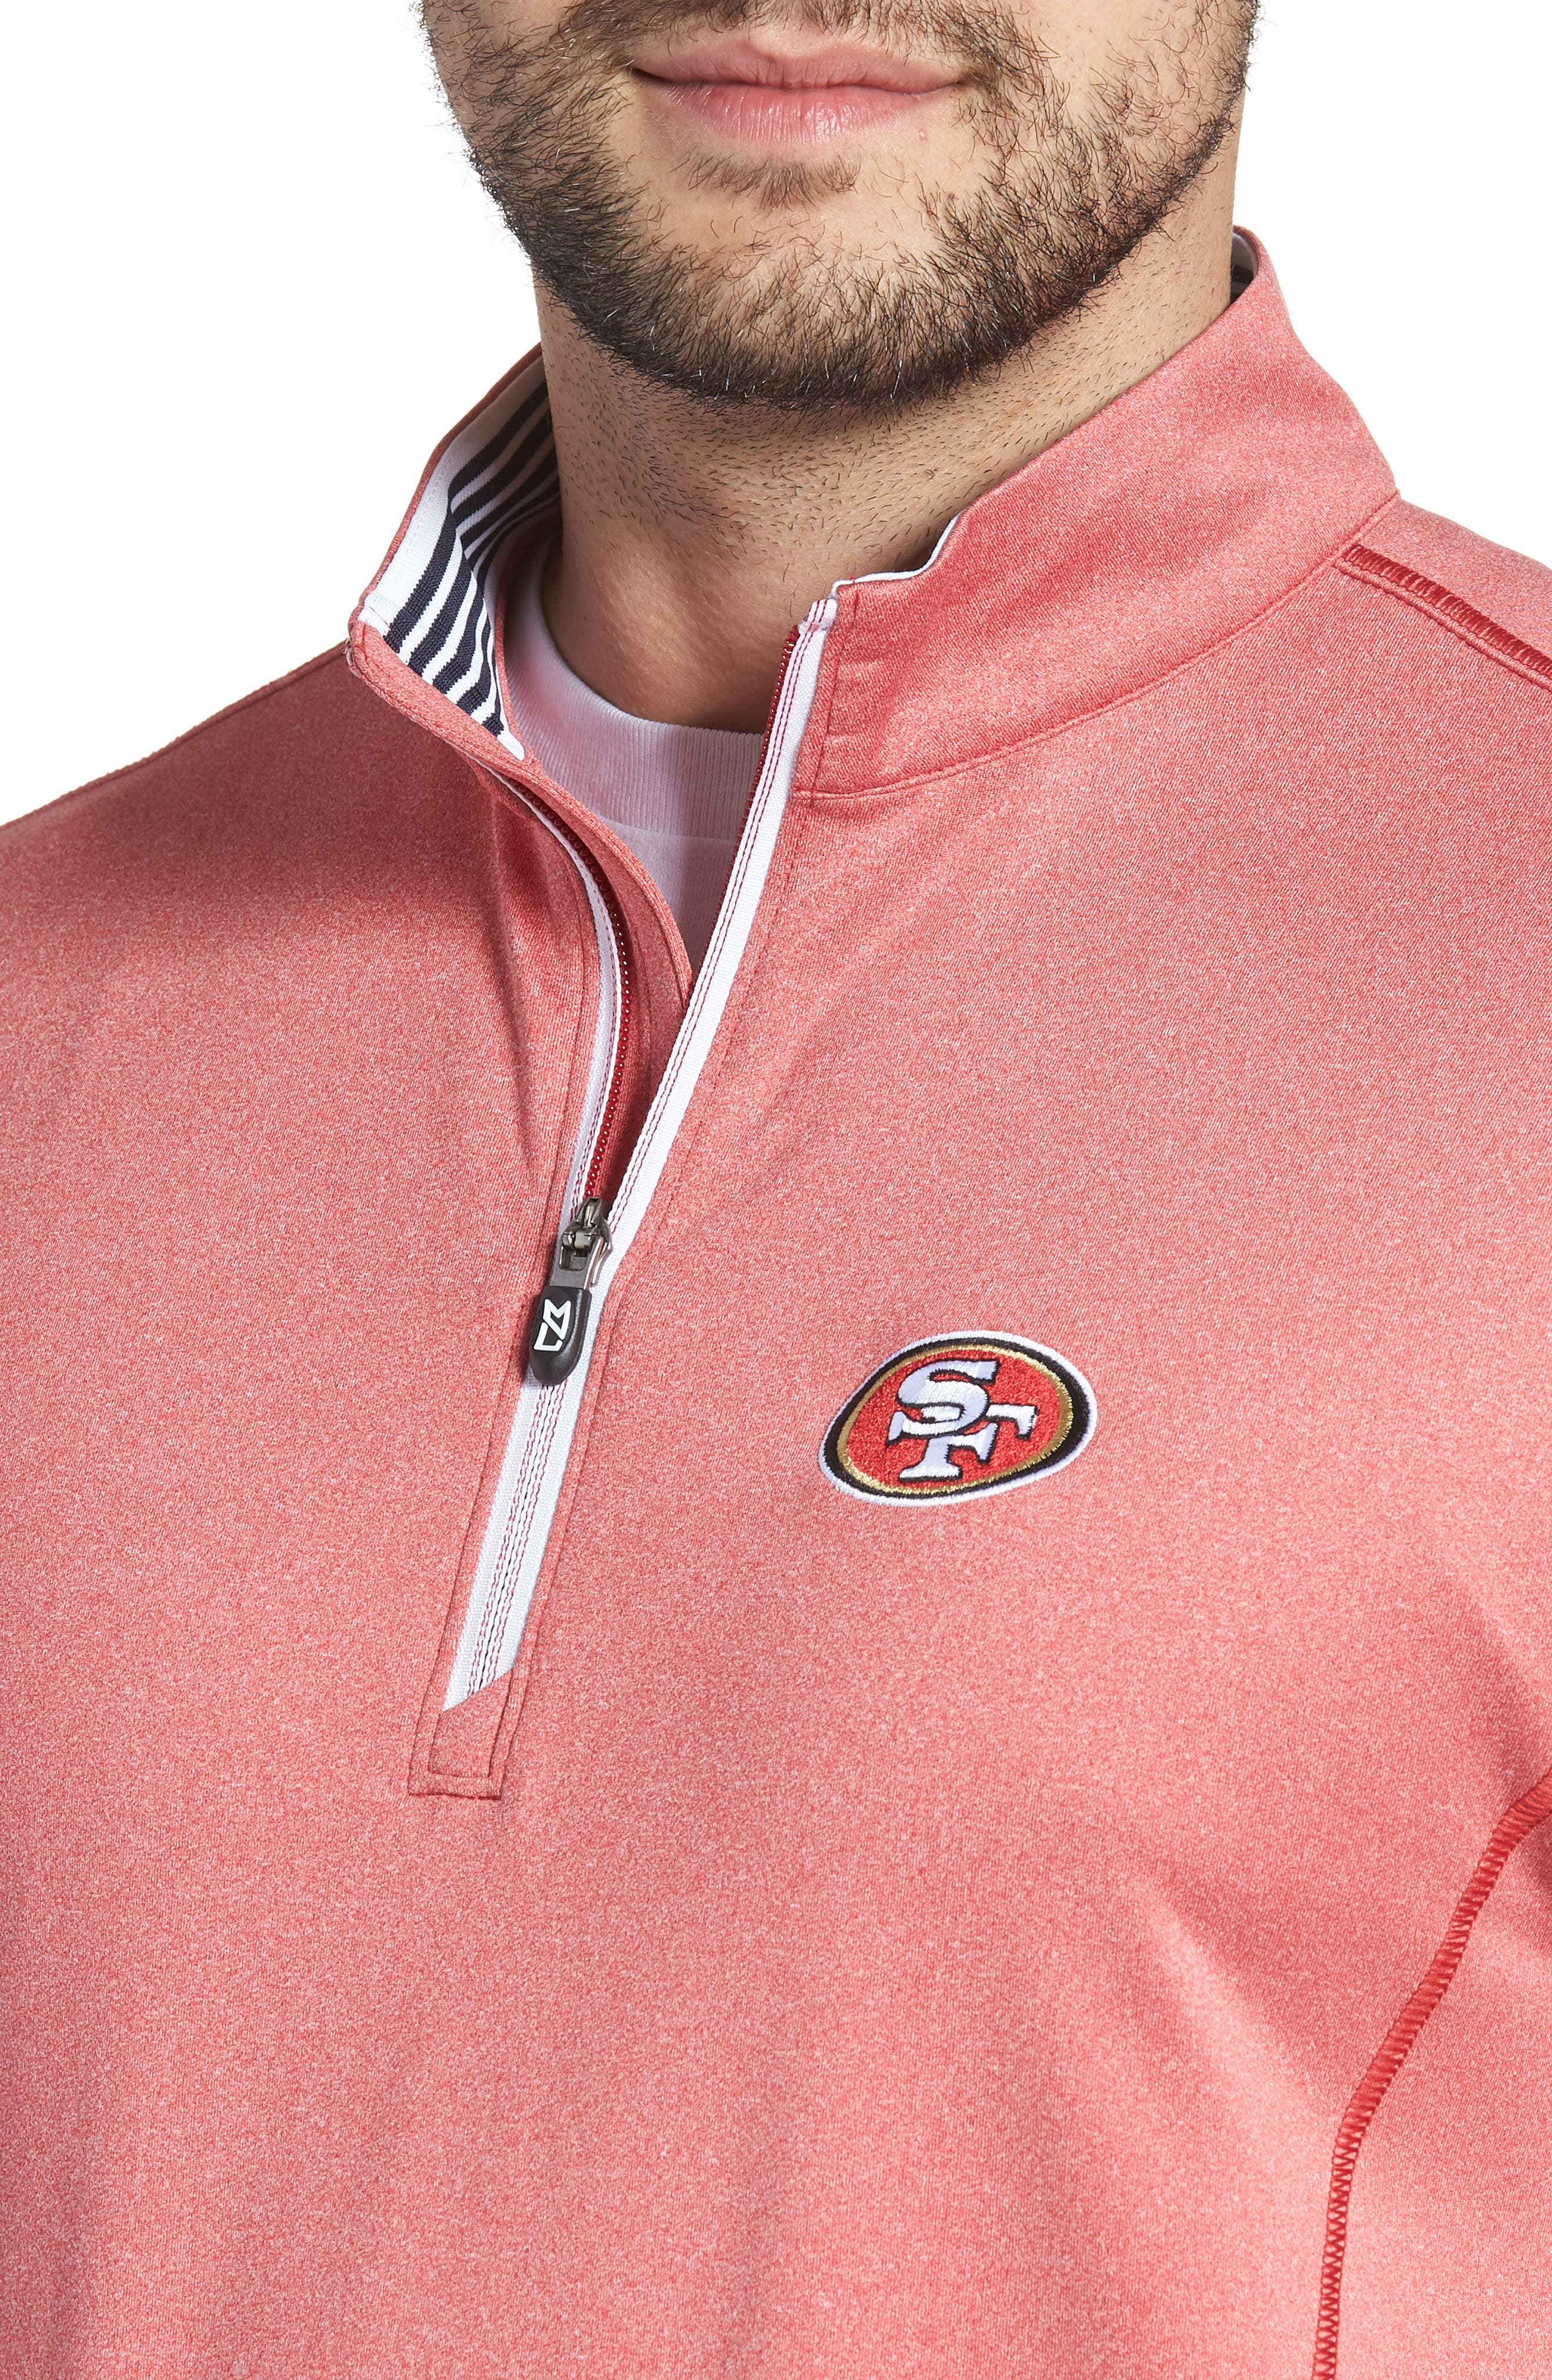 Endurance San Francisco 49s Regular Fit Pullover,                             Alternate thumbnail 4, color,                             CARDINAL RED HEATHER